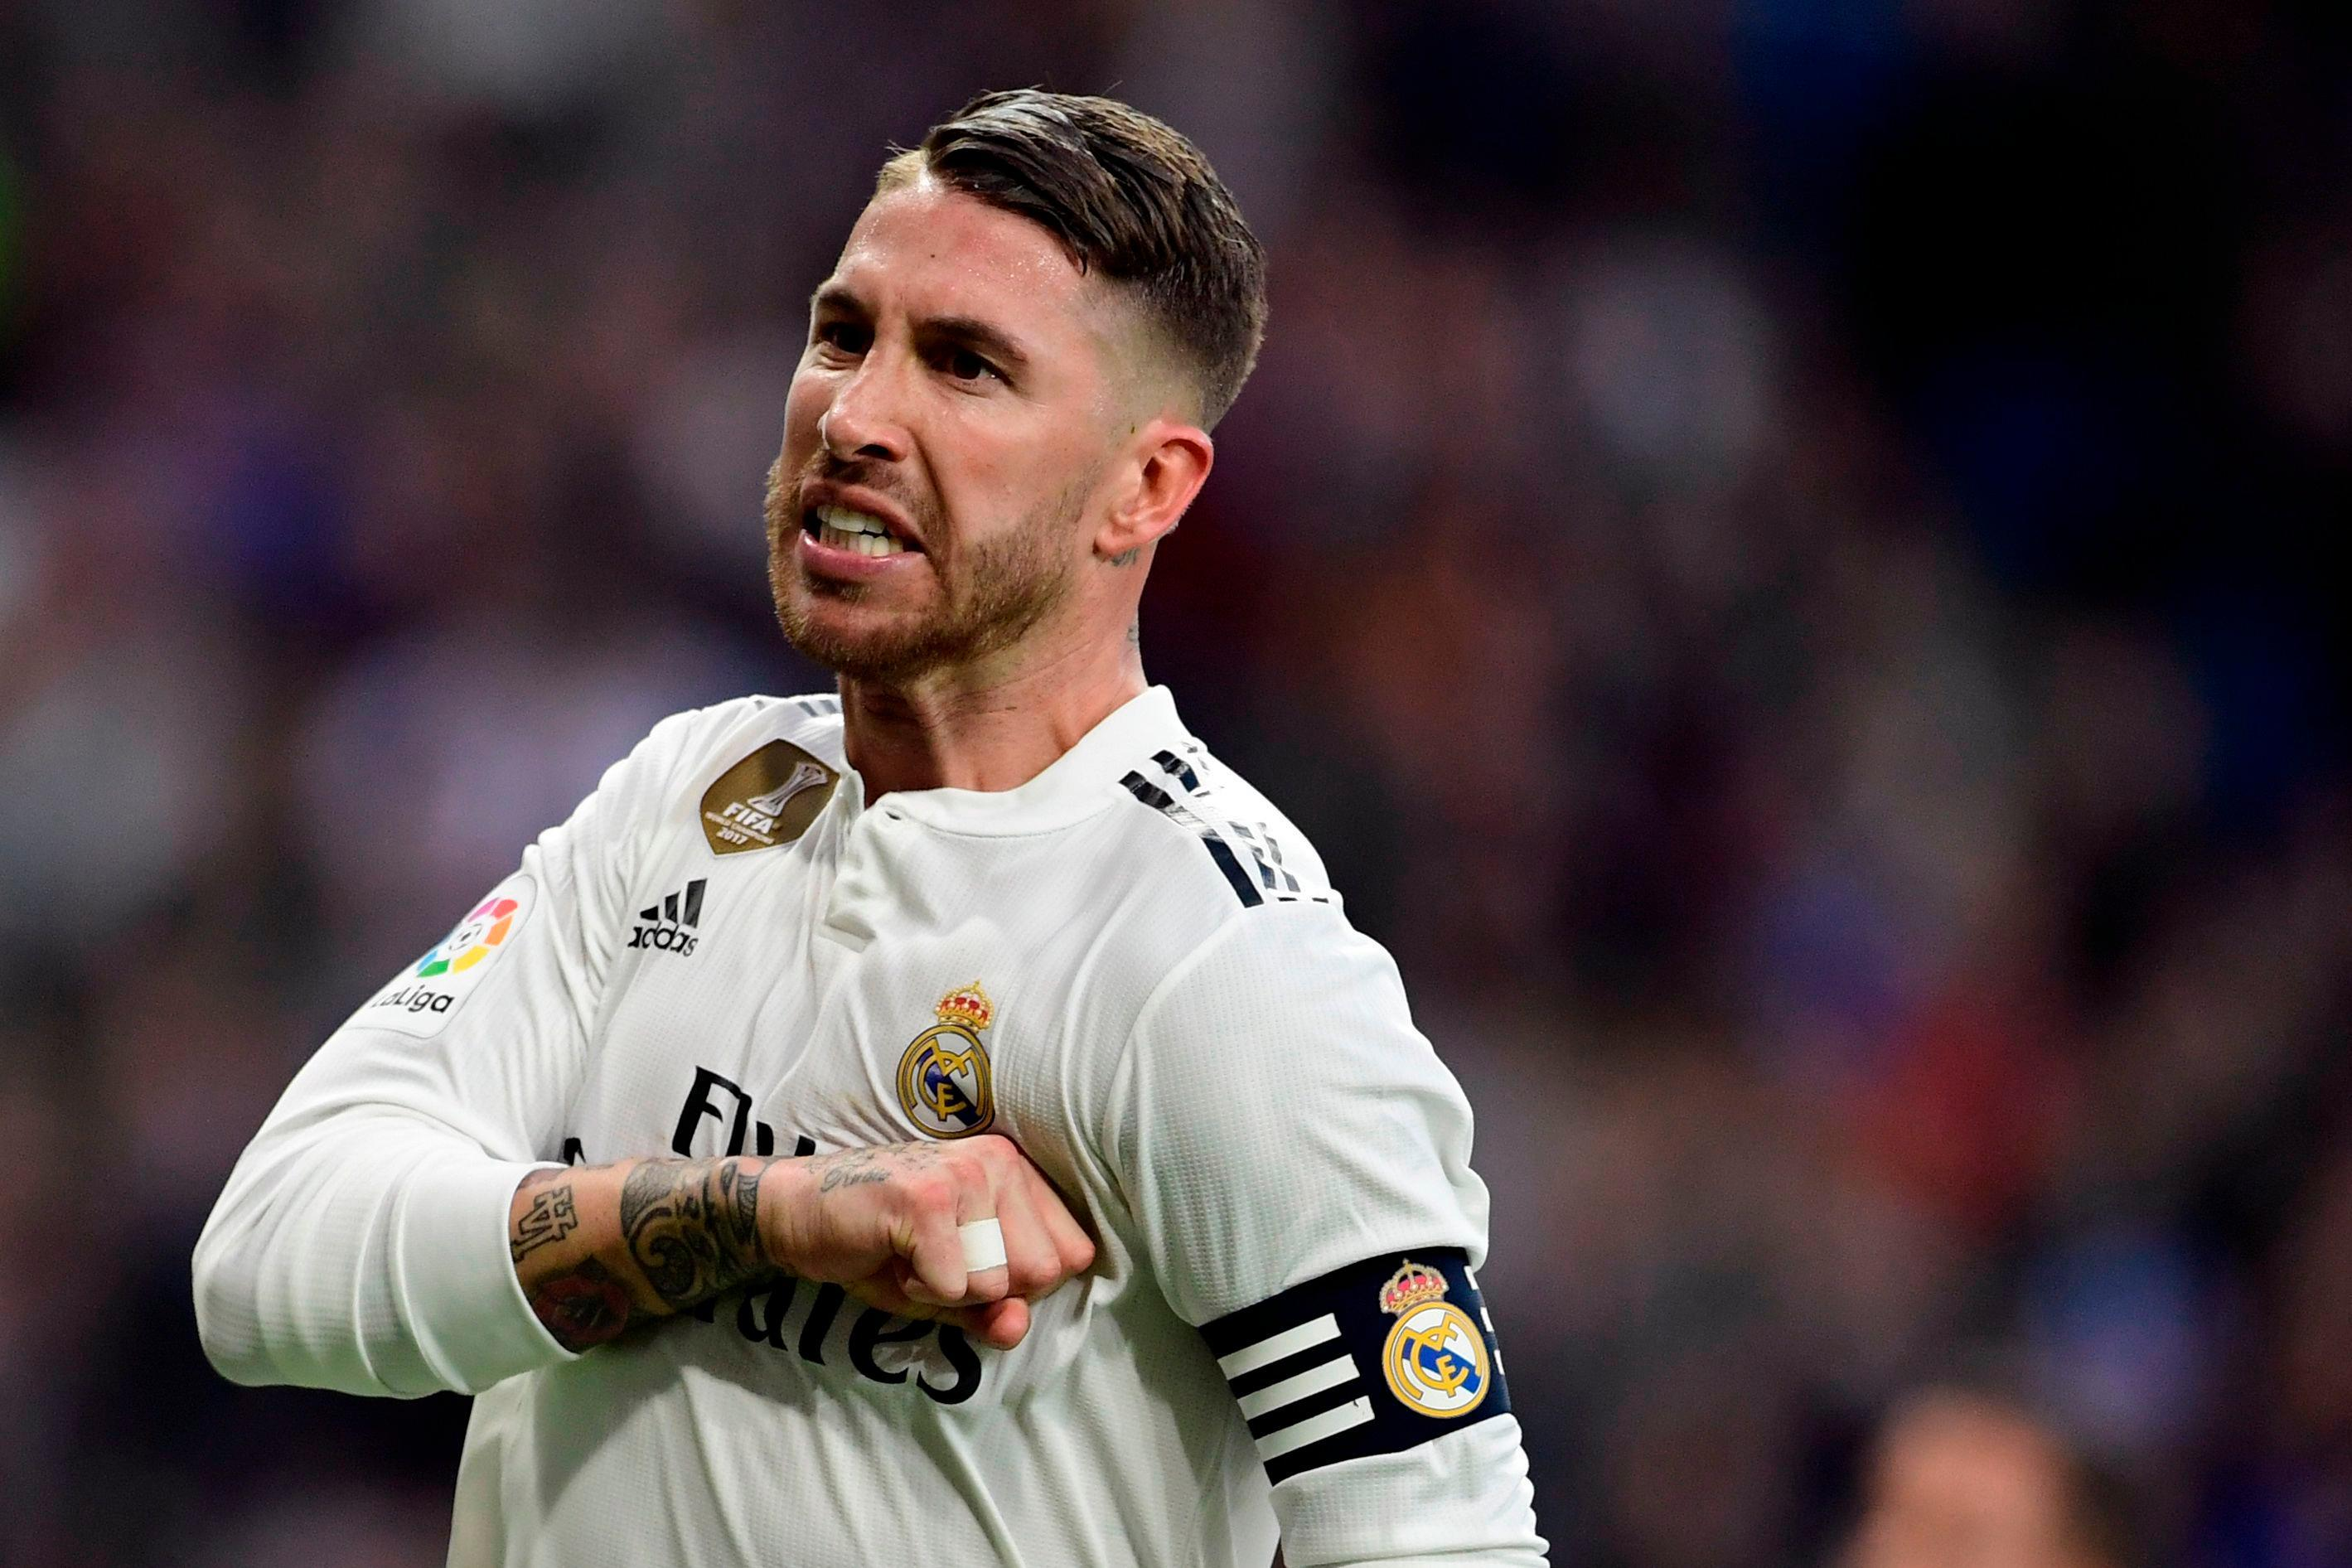 Real Madrid C. F. informs that our player, Sergio Ramos, has tested positive in the last COVID-19 test that he has taken. - Bóng Đá